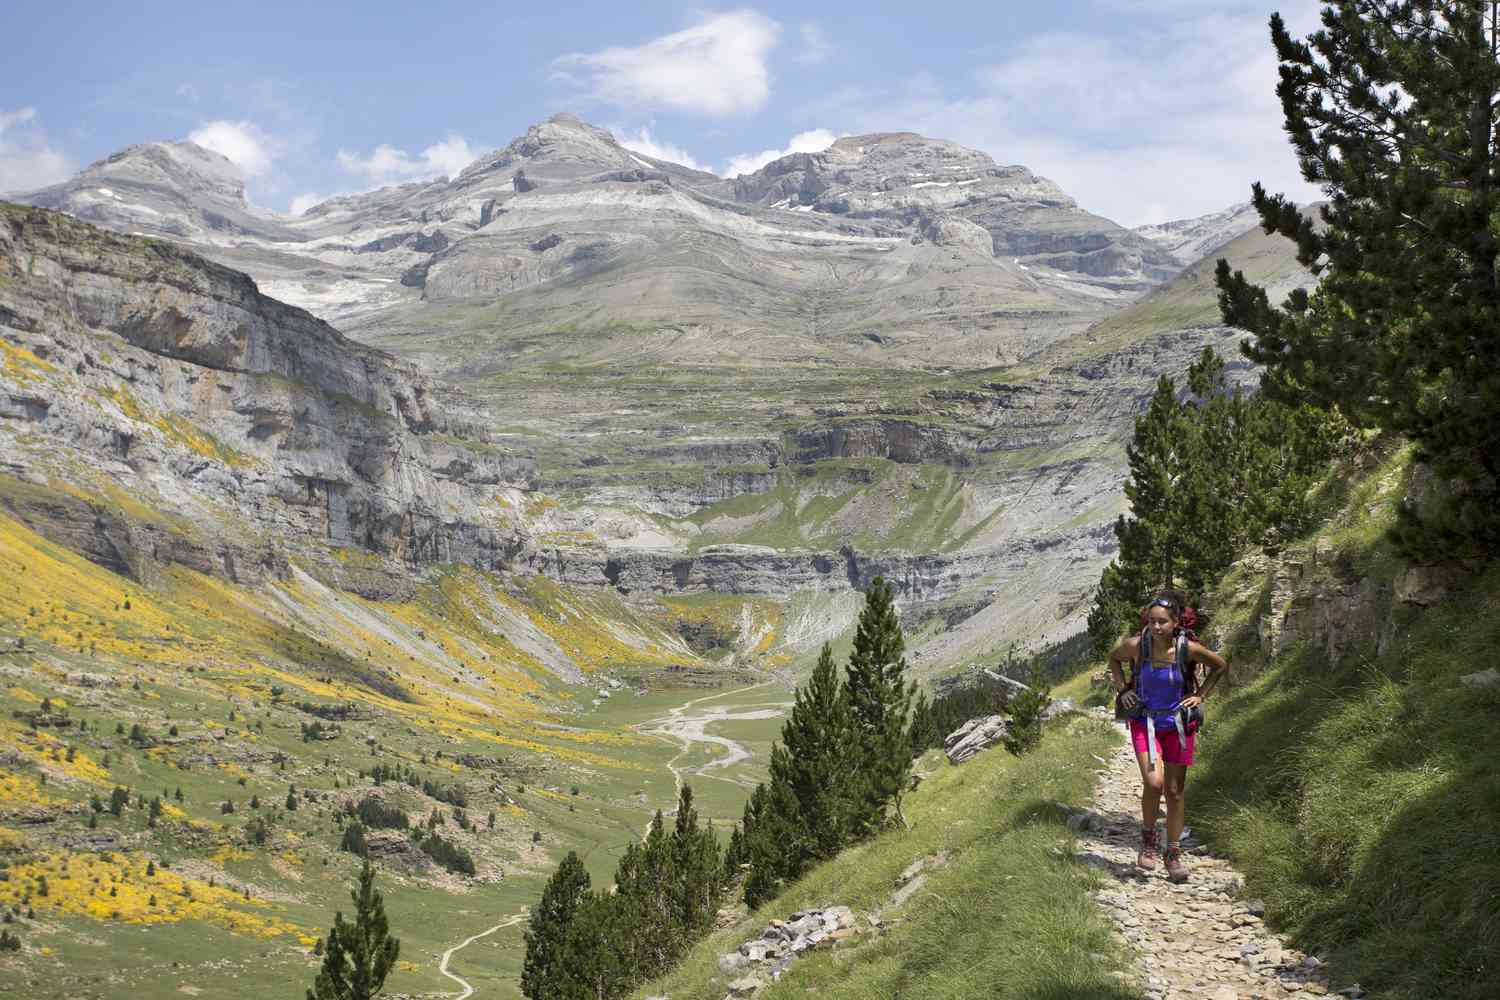 Woman Hiking in the Pyrenees Mountains, Spain